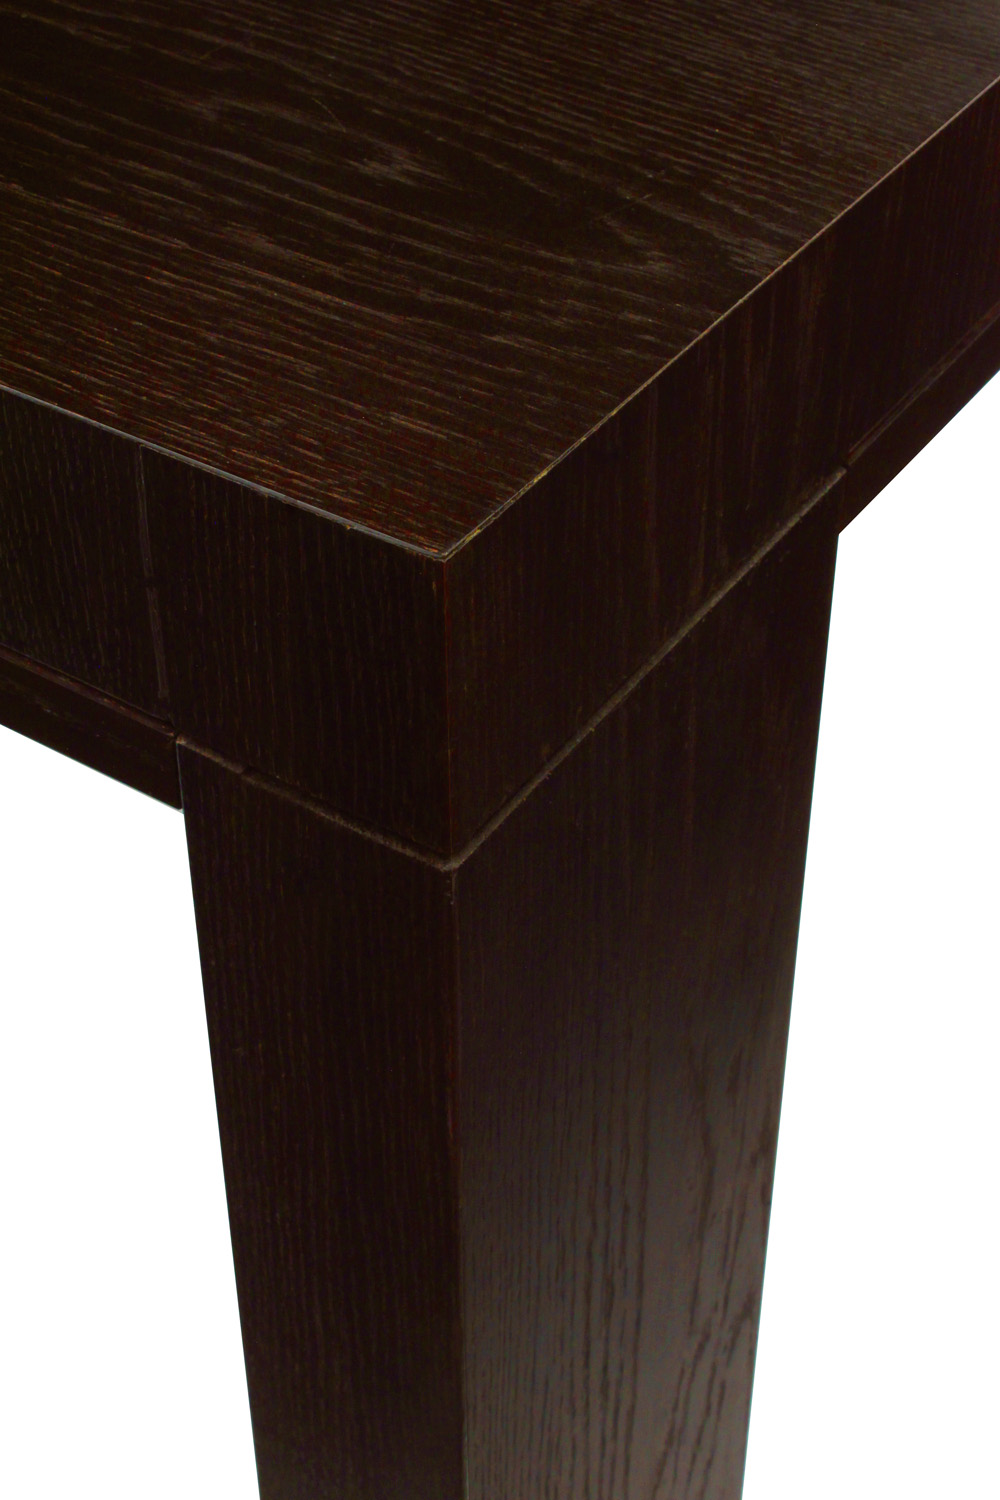 Liagre 85 dark oak diningtable137 detail1 hires.jpg